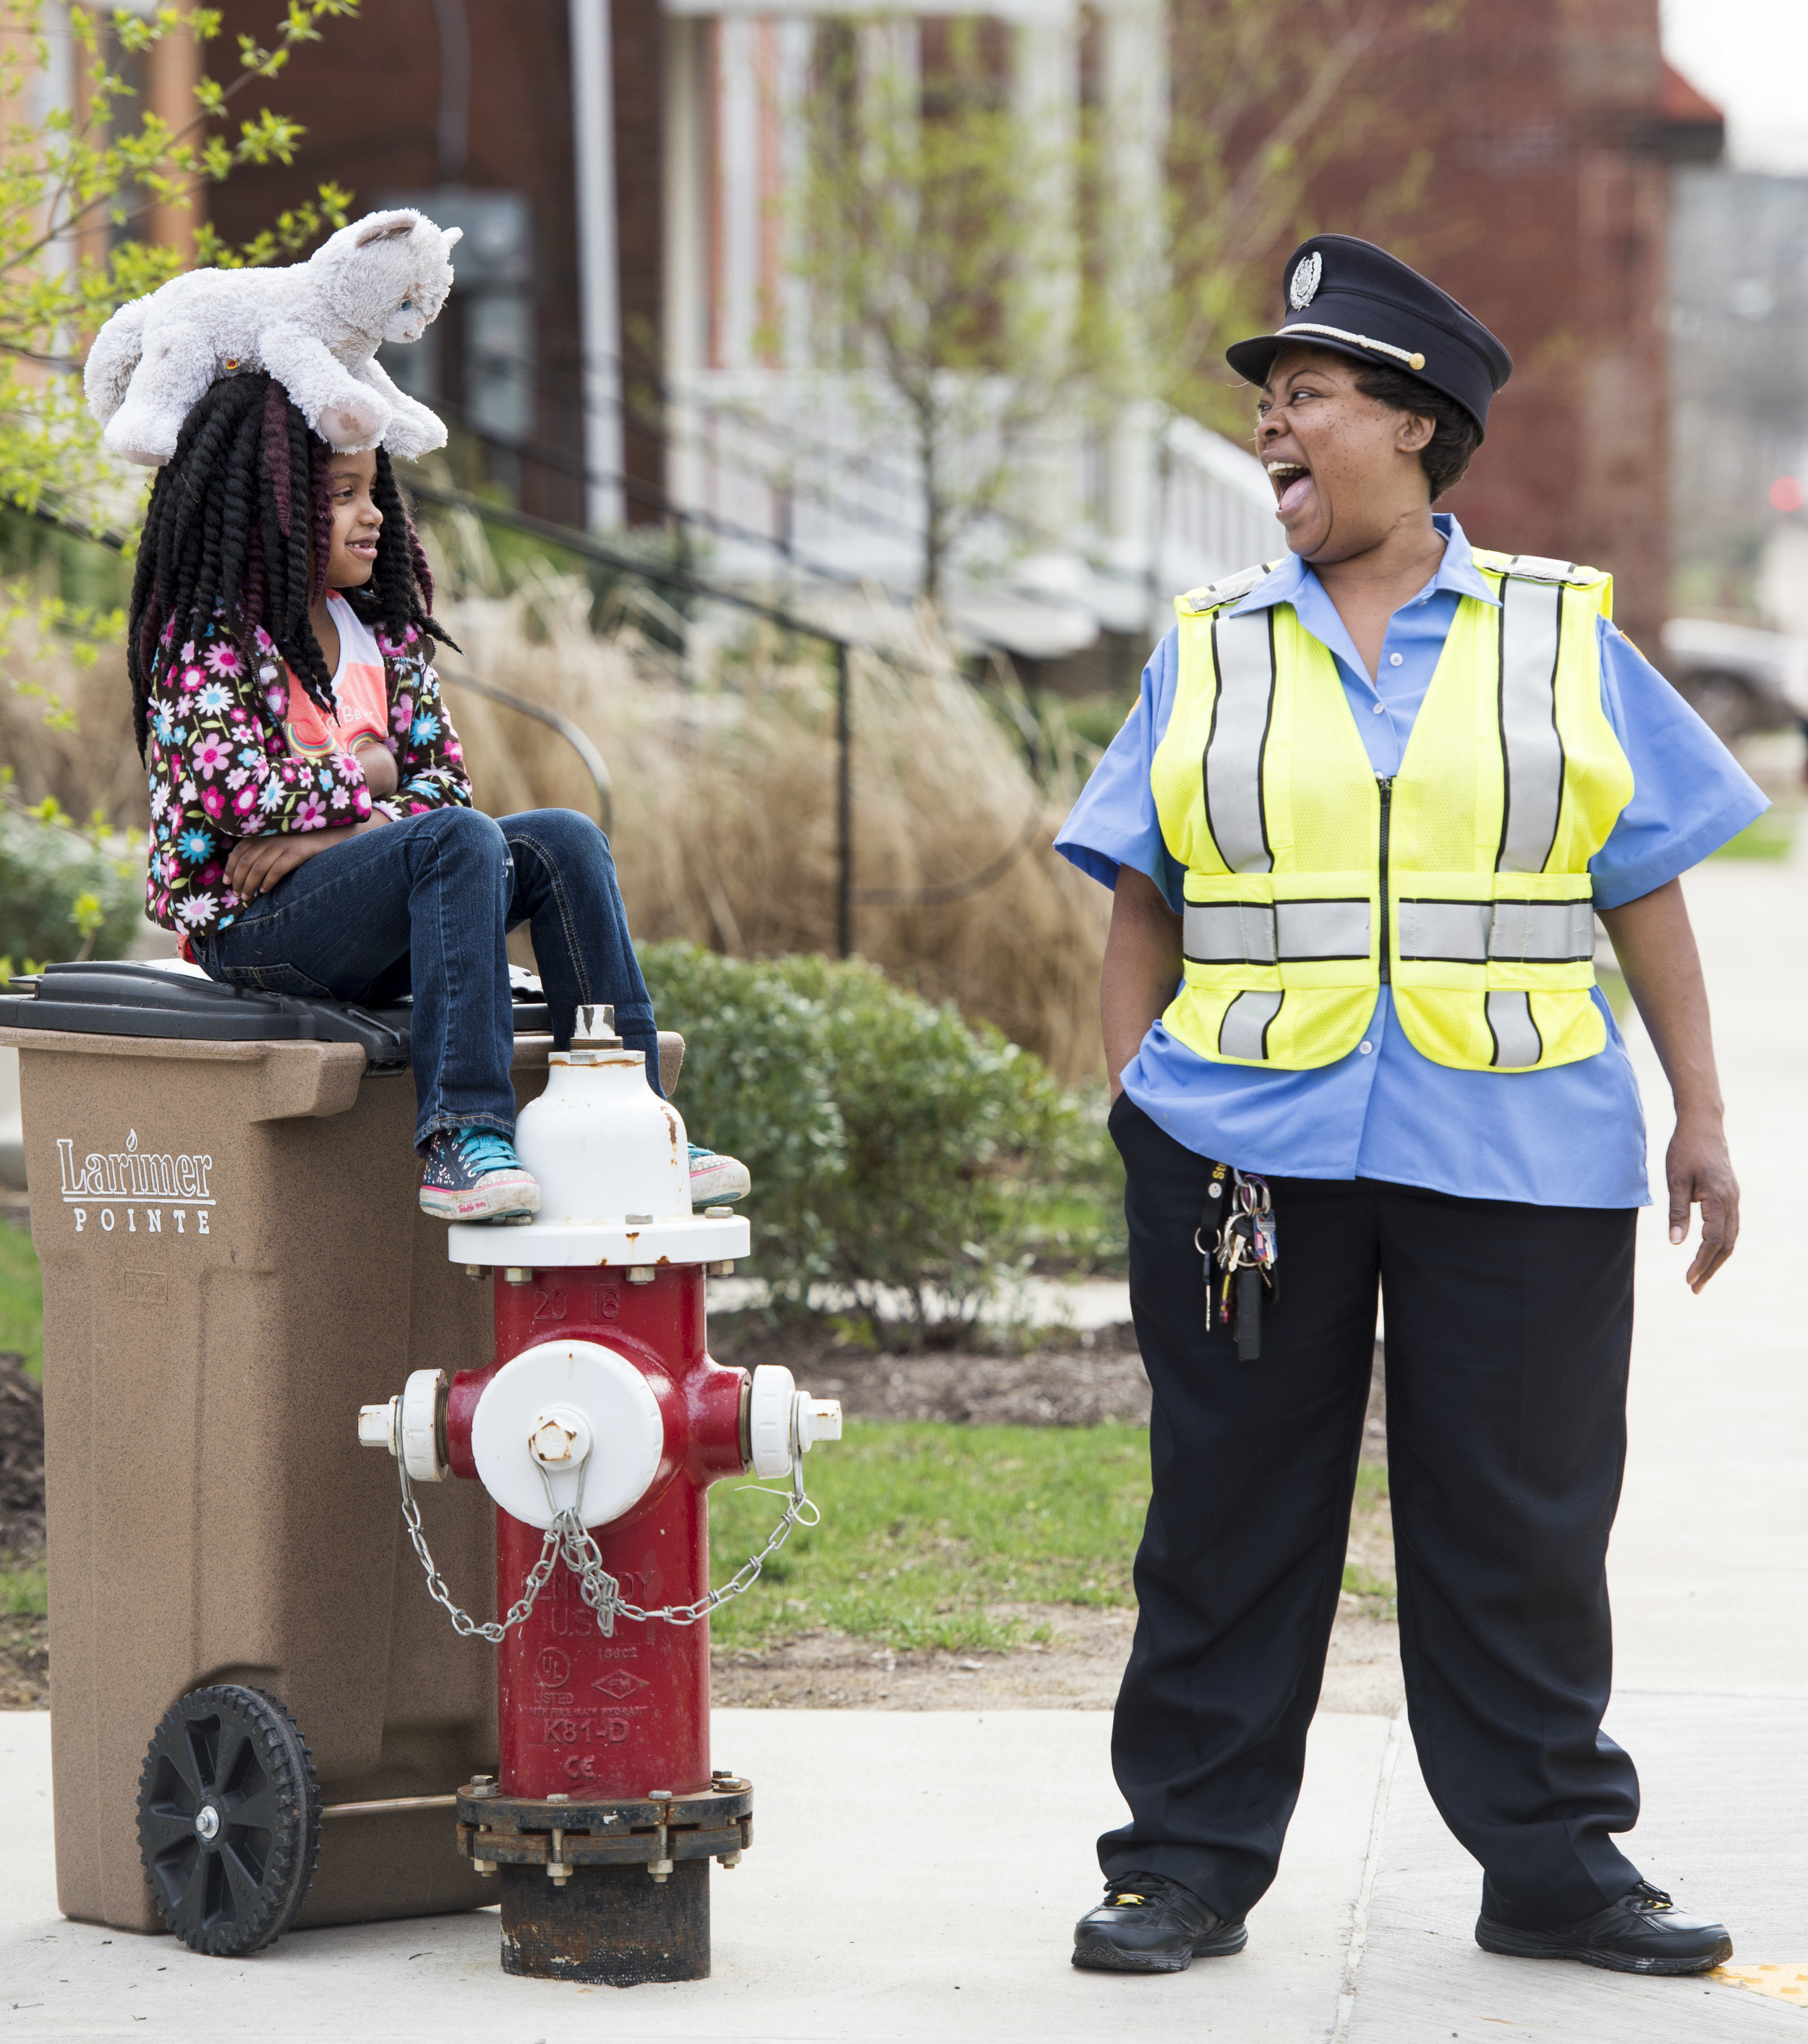 """City of Pittsburgh crossing guard Carla Harris (right) laughs with Rhavyn Doubt, 7, and Doubt's stuffed animal """"Fluffy"""" as Doubt waits with her on Wednesday, April 18, 2018 at the corner of Meadow Street and Larimer Avenue in Larimer. """"She's a sweetie, and she keeps me company,"""" Harris said of Doubt, who lives nearby but likes to sit with her at the intersection on a regular basis. """"I'm like a godmother to the kids because I am here every day watching over them and protecting them."""" (Steph Chambers/Post-Gazette)"""